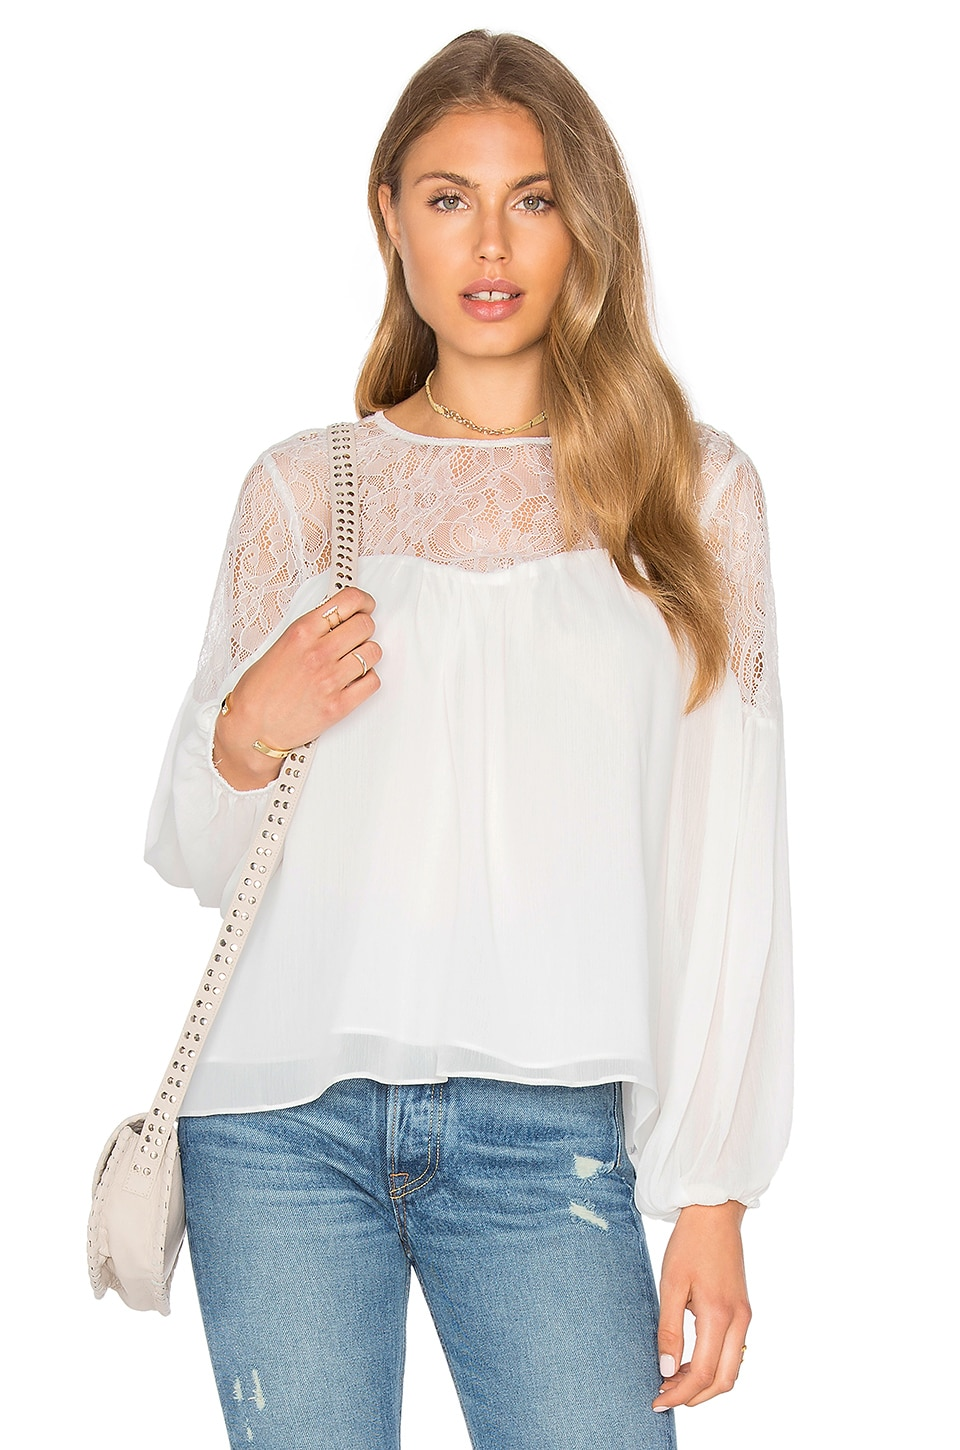 Lace Blouse by Endless Rose